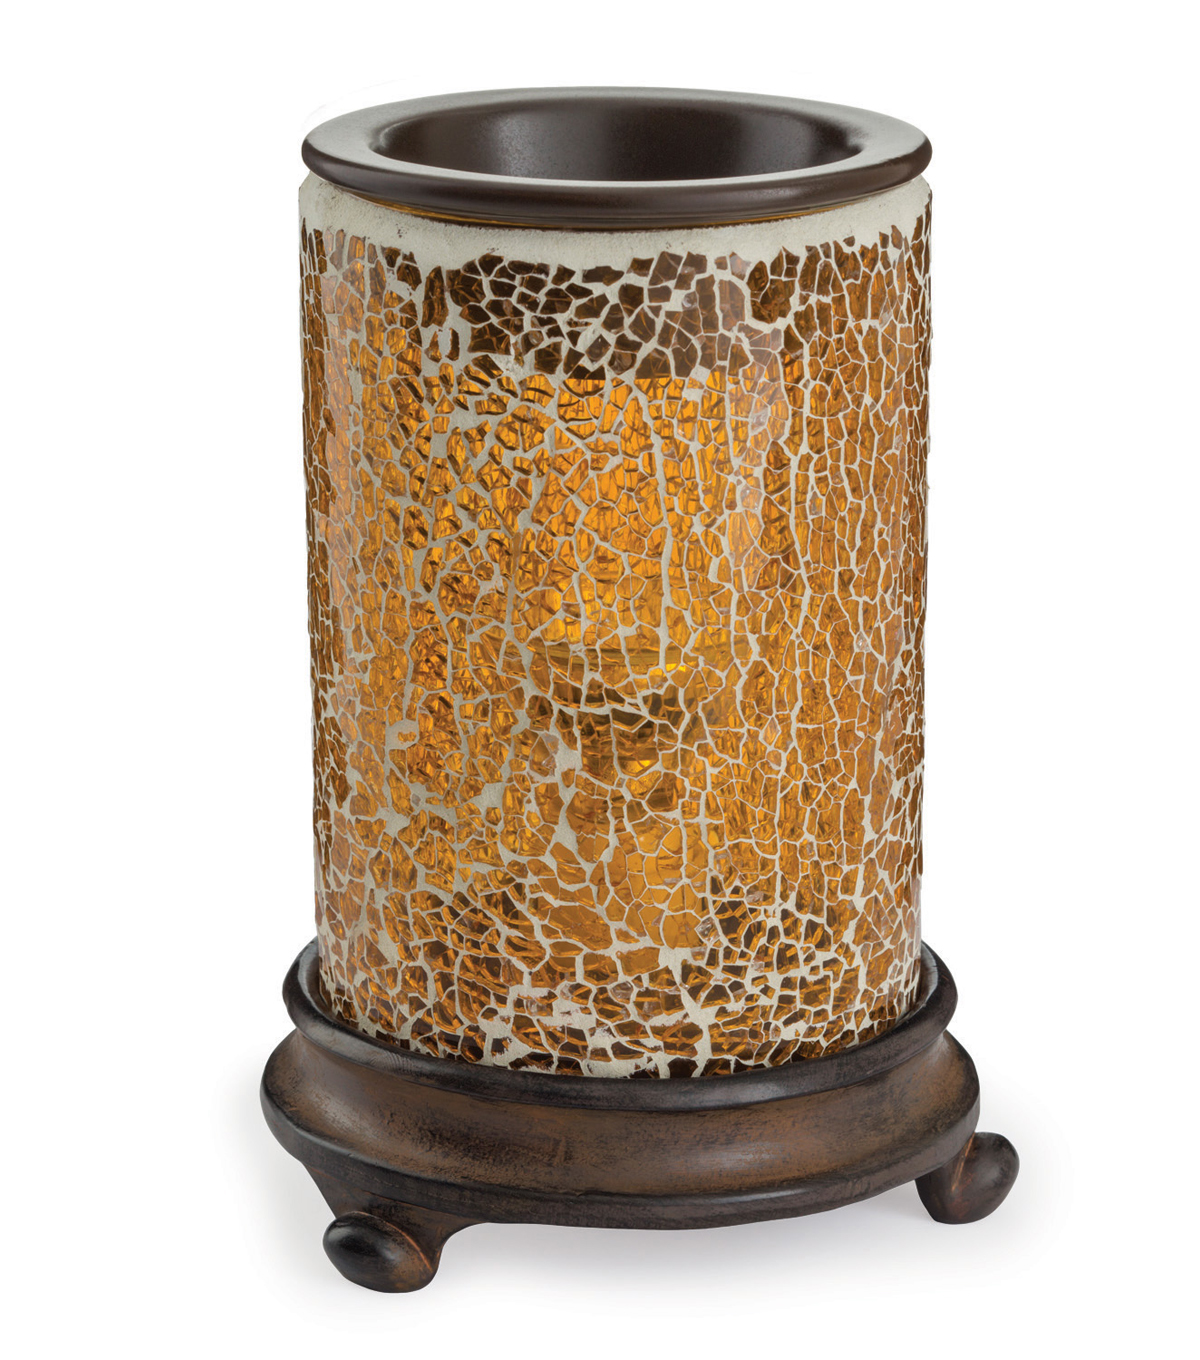 Hudson 43 Candle & Light Collection Crackled Amber Glass Fragrance Warmer